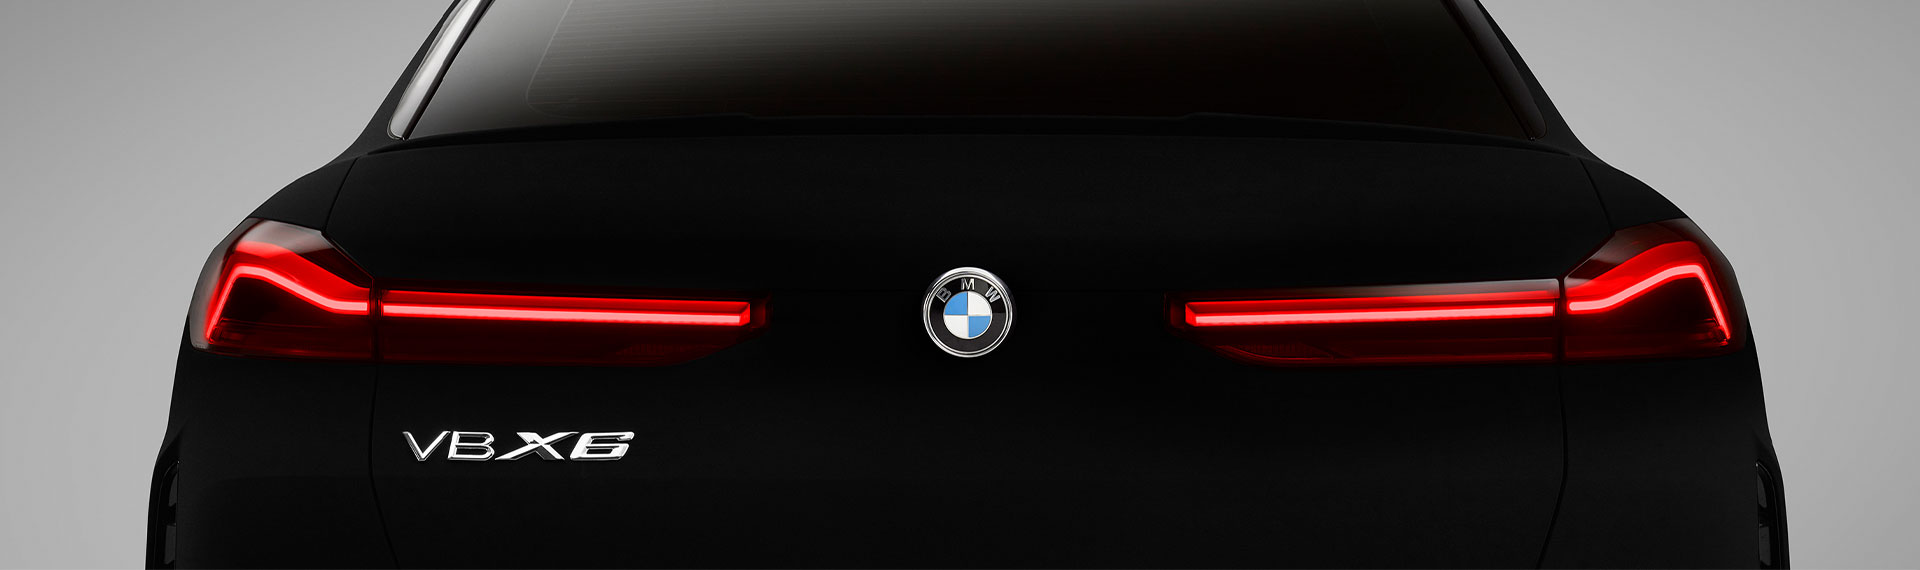 Rear view of BMW X6 in Vantablack®